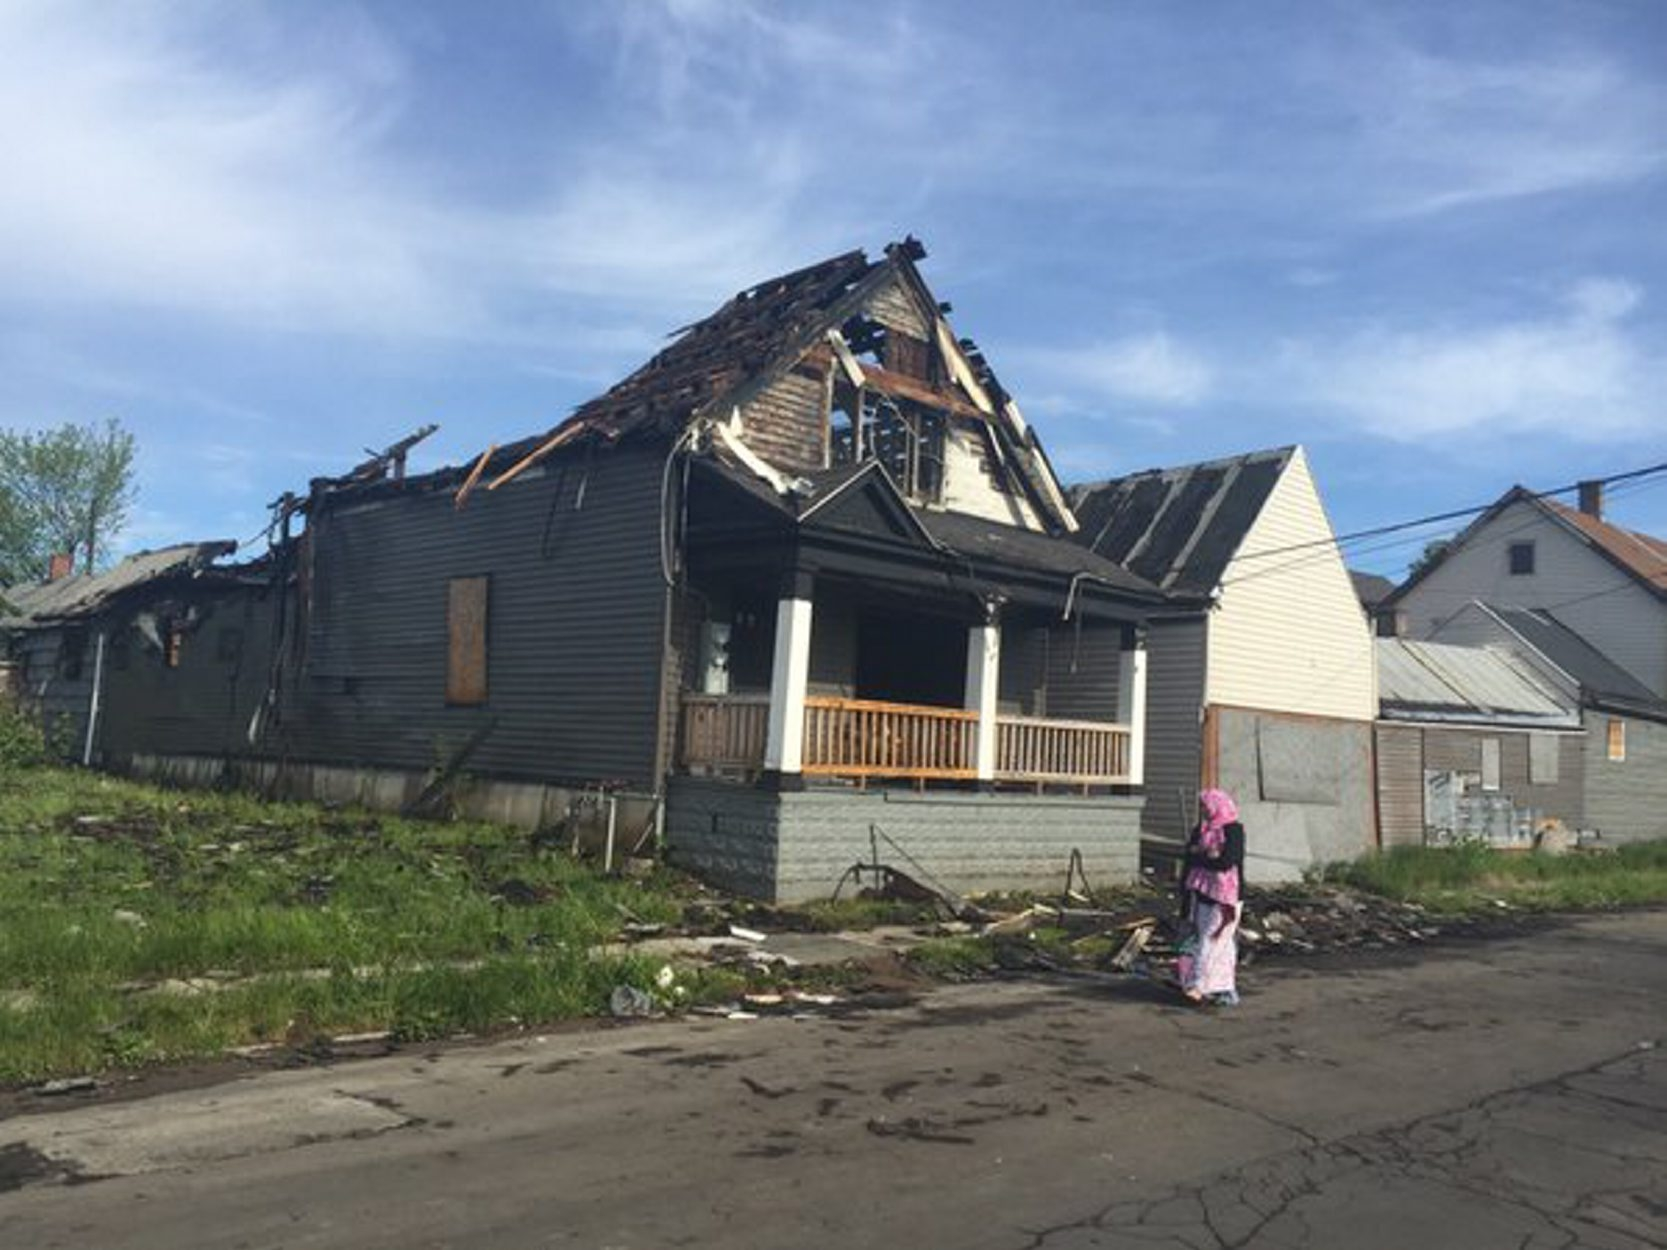 The home on Clark Street where a fire began early Wednesday and spread to neighboring structures. (John Hickey/Buffalo News)